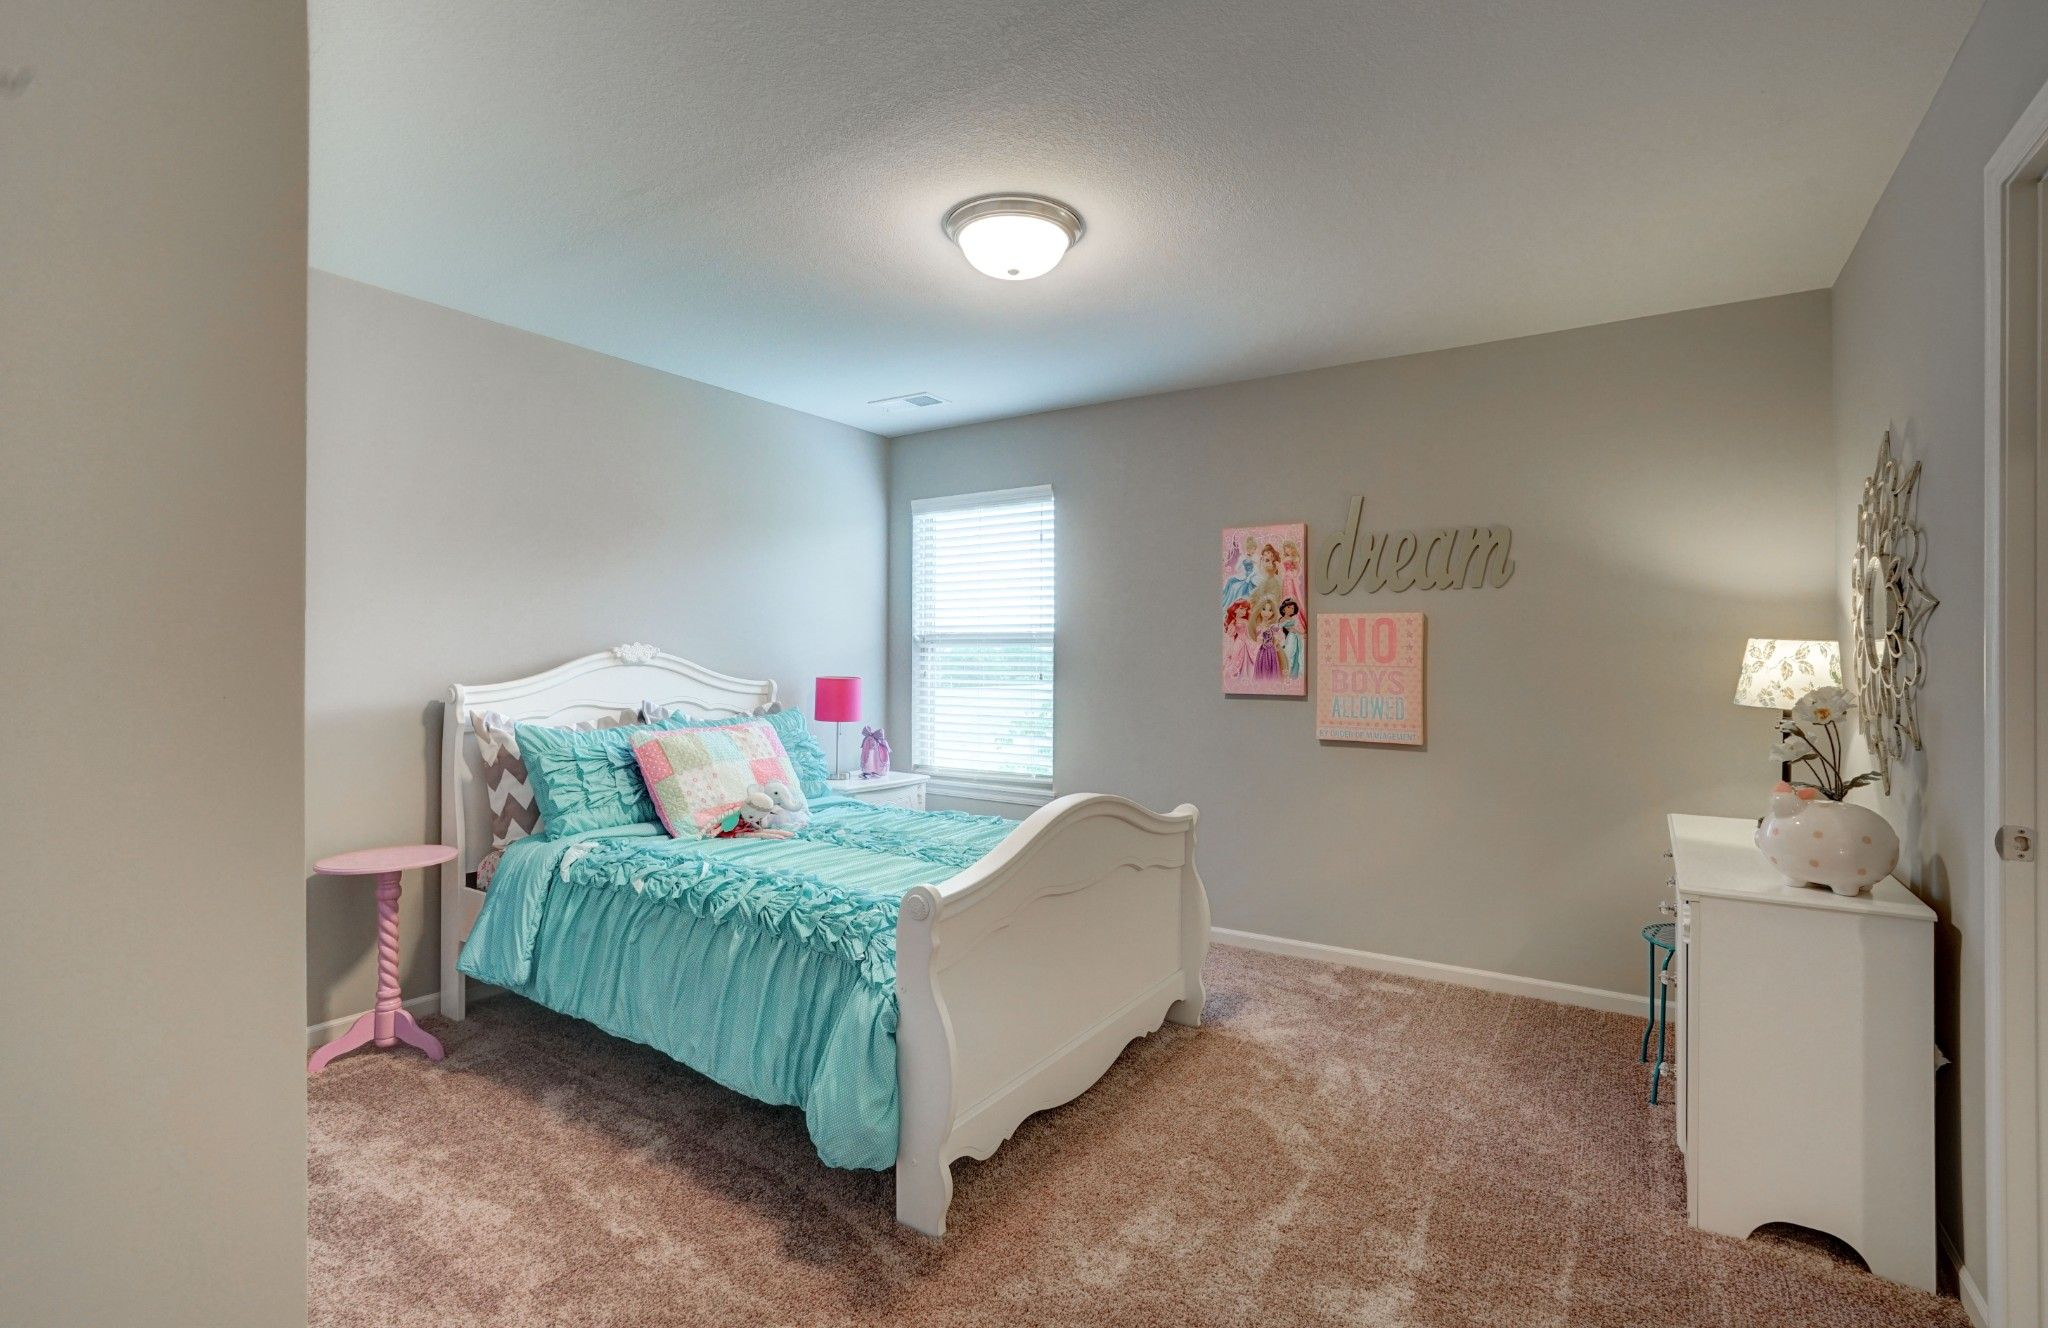 Bedroom featured in the Palmer II - IA By Summit Homes in Des Moines, IA